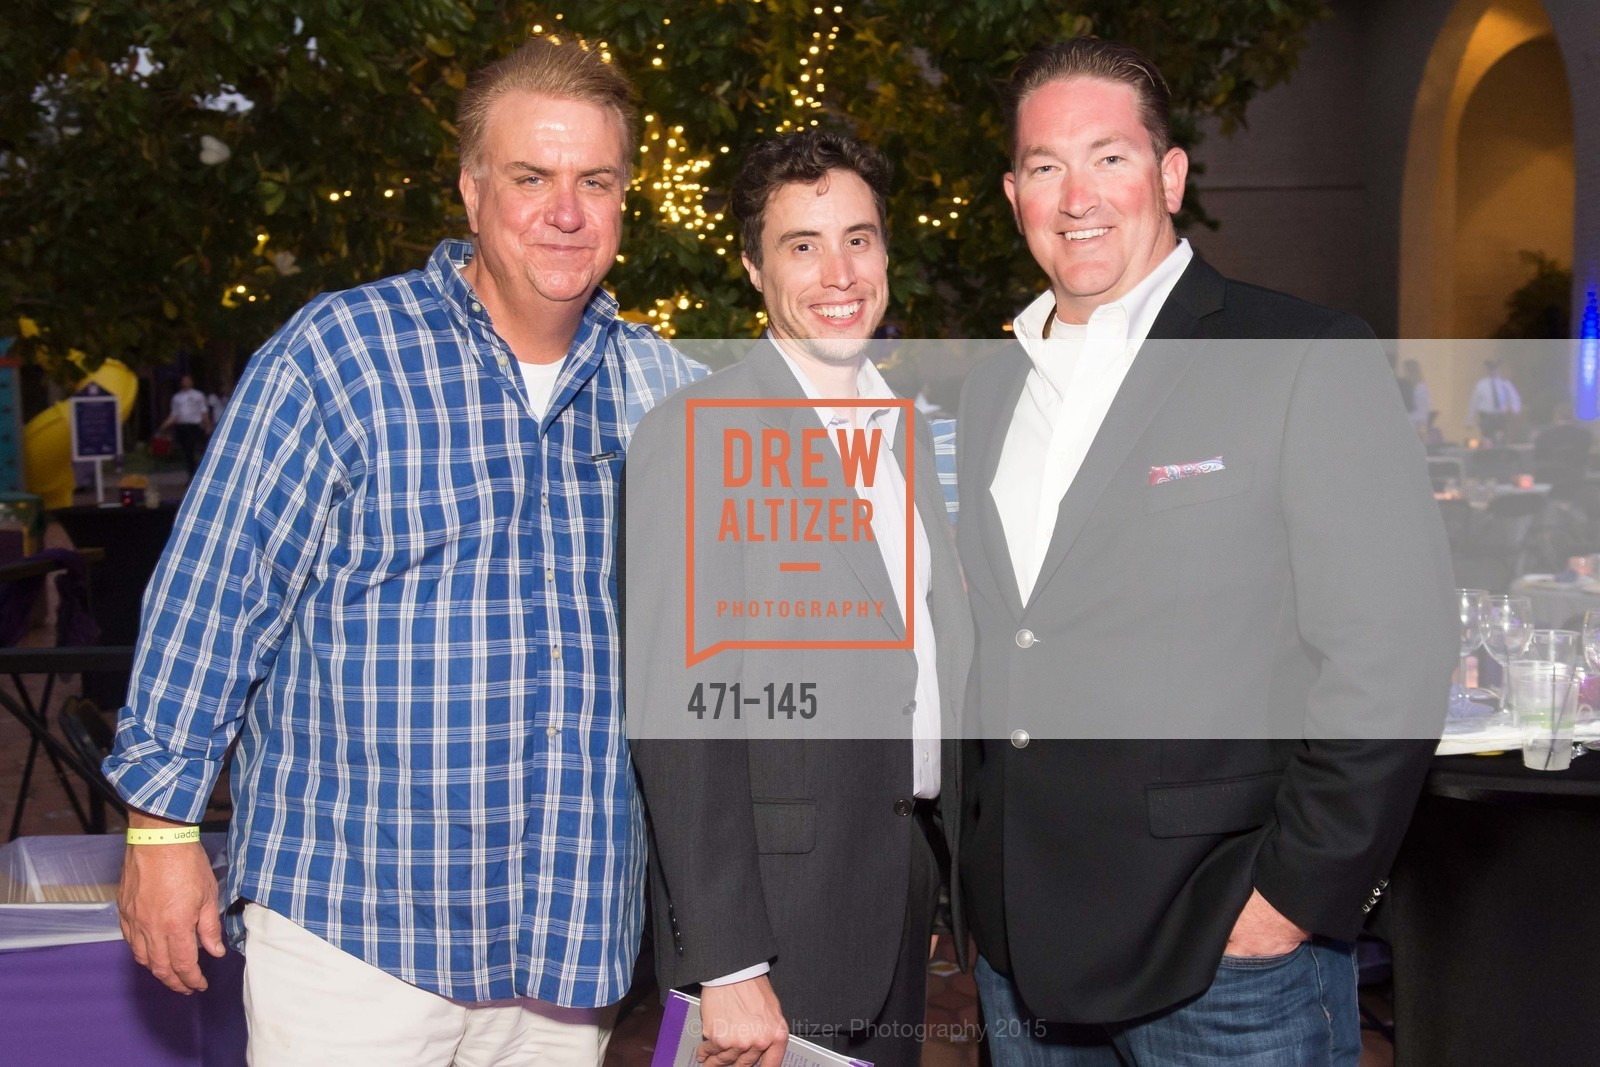 Mike Fox, Curtis Kluet, Dave Bragg, DREAMS HAPPEN: Playhouse Auction and Gala, Stanford Shopping Center, June 5th, 2015,Drew Altizer, Drew Altizer Photography, full-service agency, private events, San Francisco photographer, photographer california